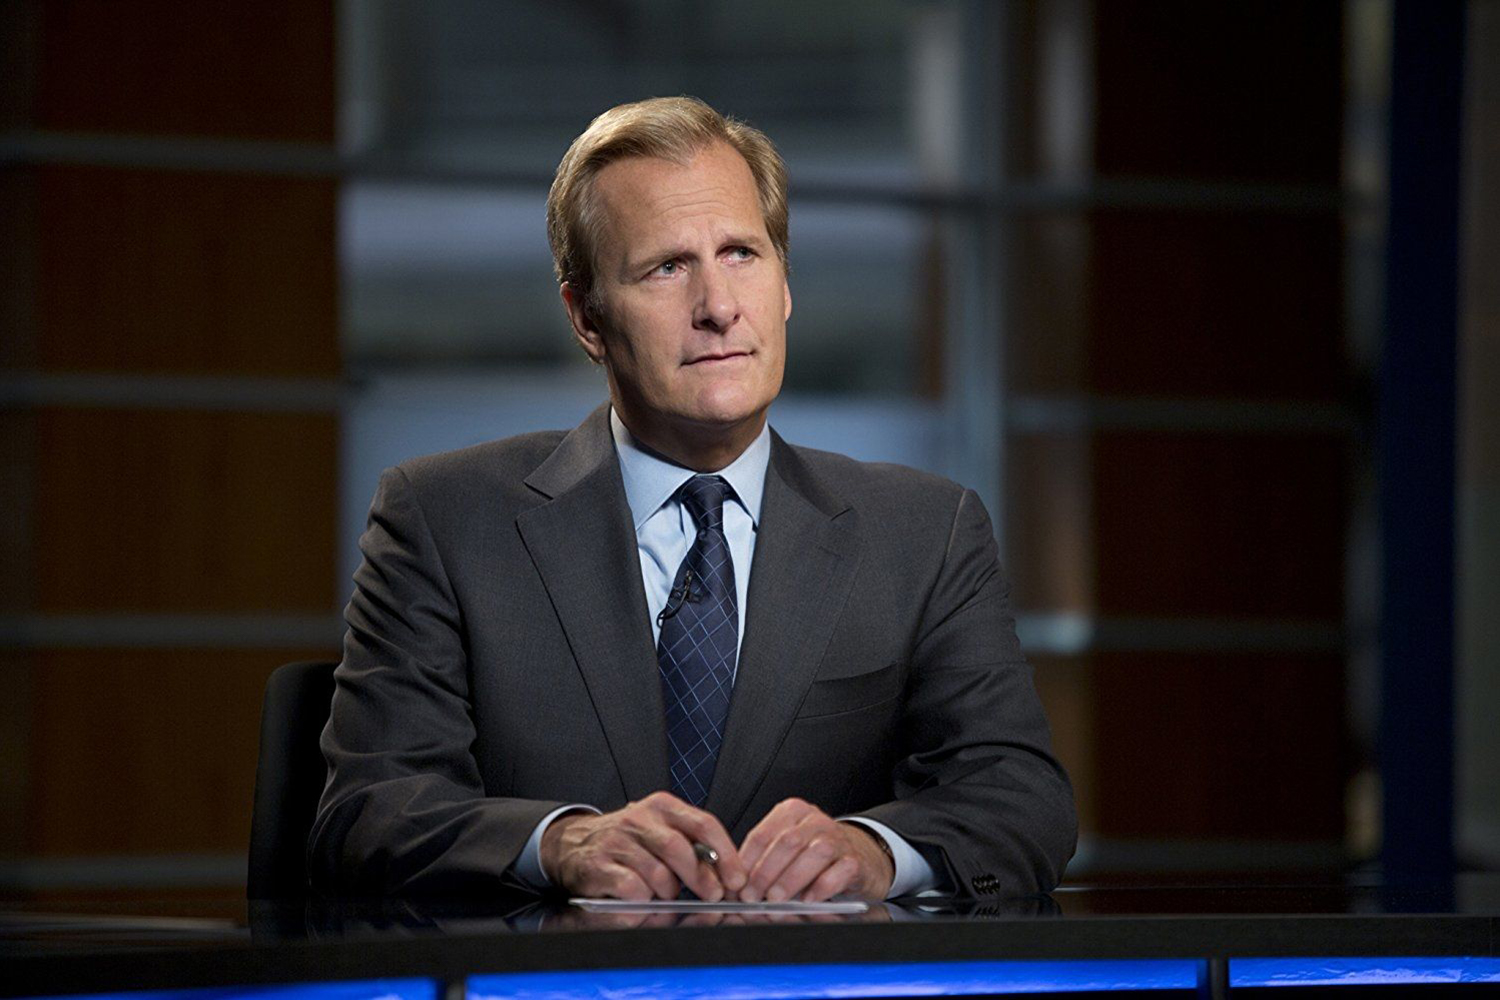 Jeff Daniels dans la série The Newsroom (HBO)